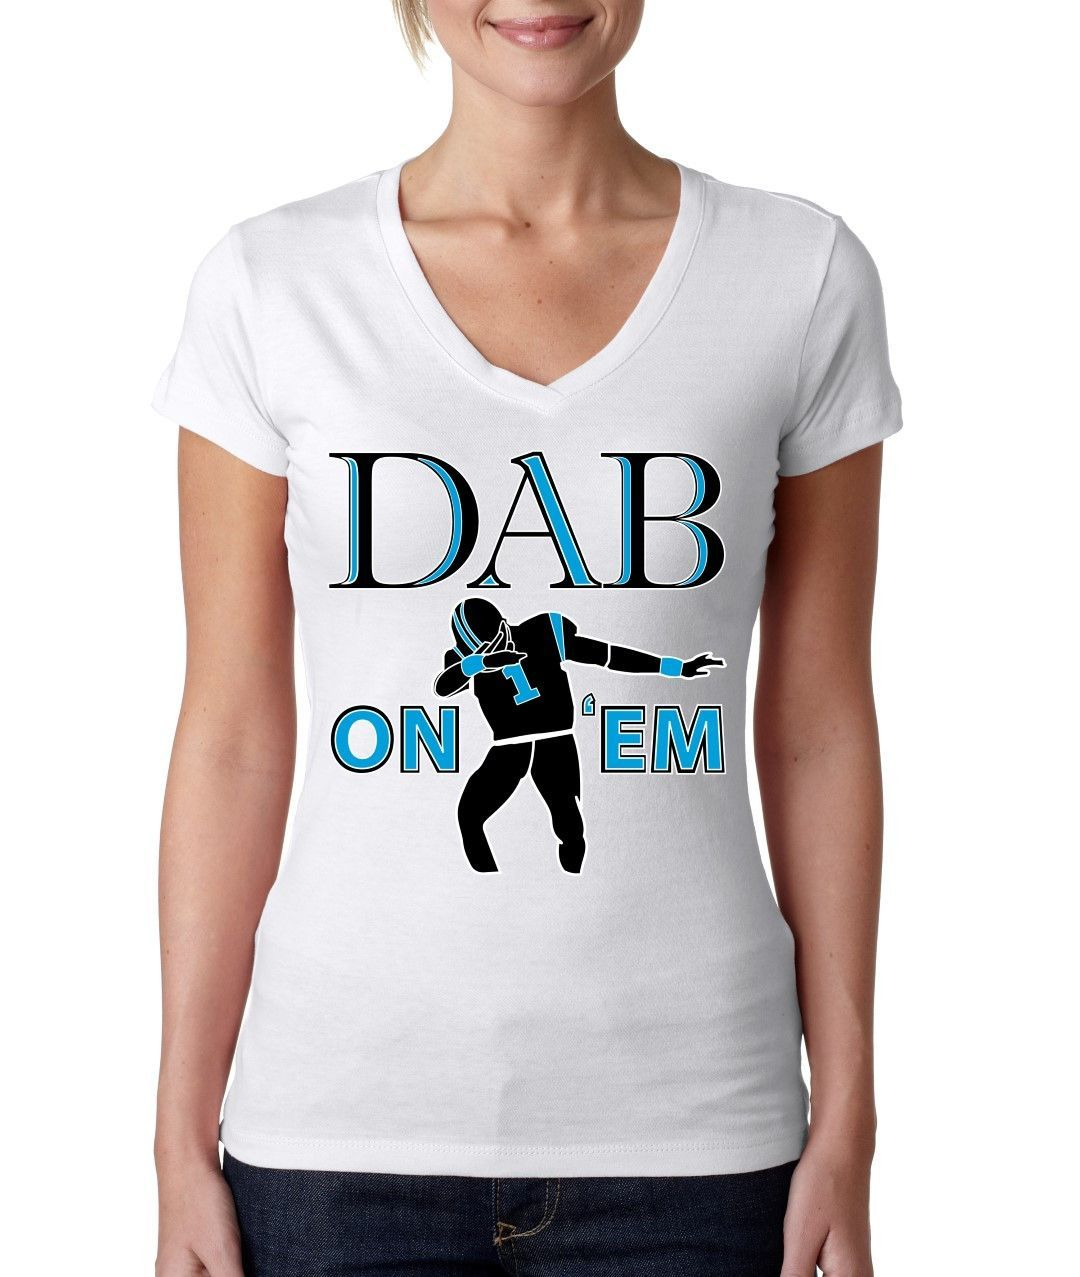 Dab on em Cam Newton Big Will Sporty V Shirt women